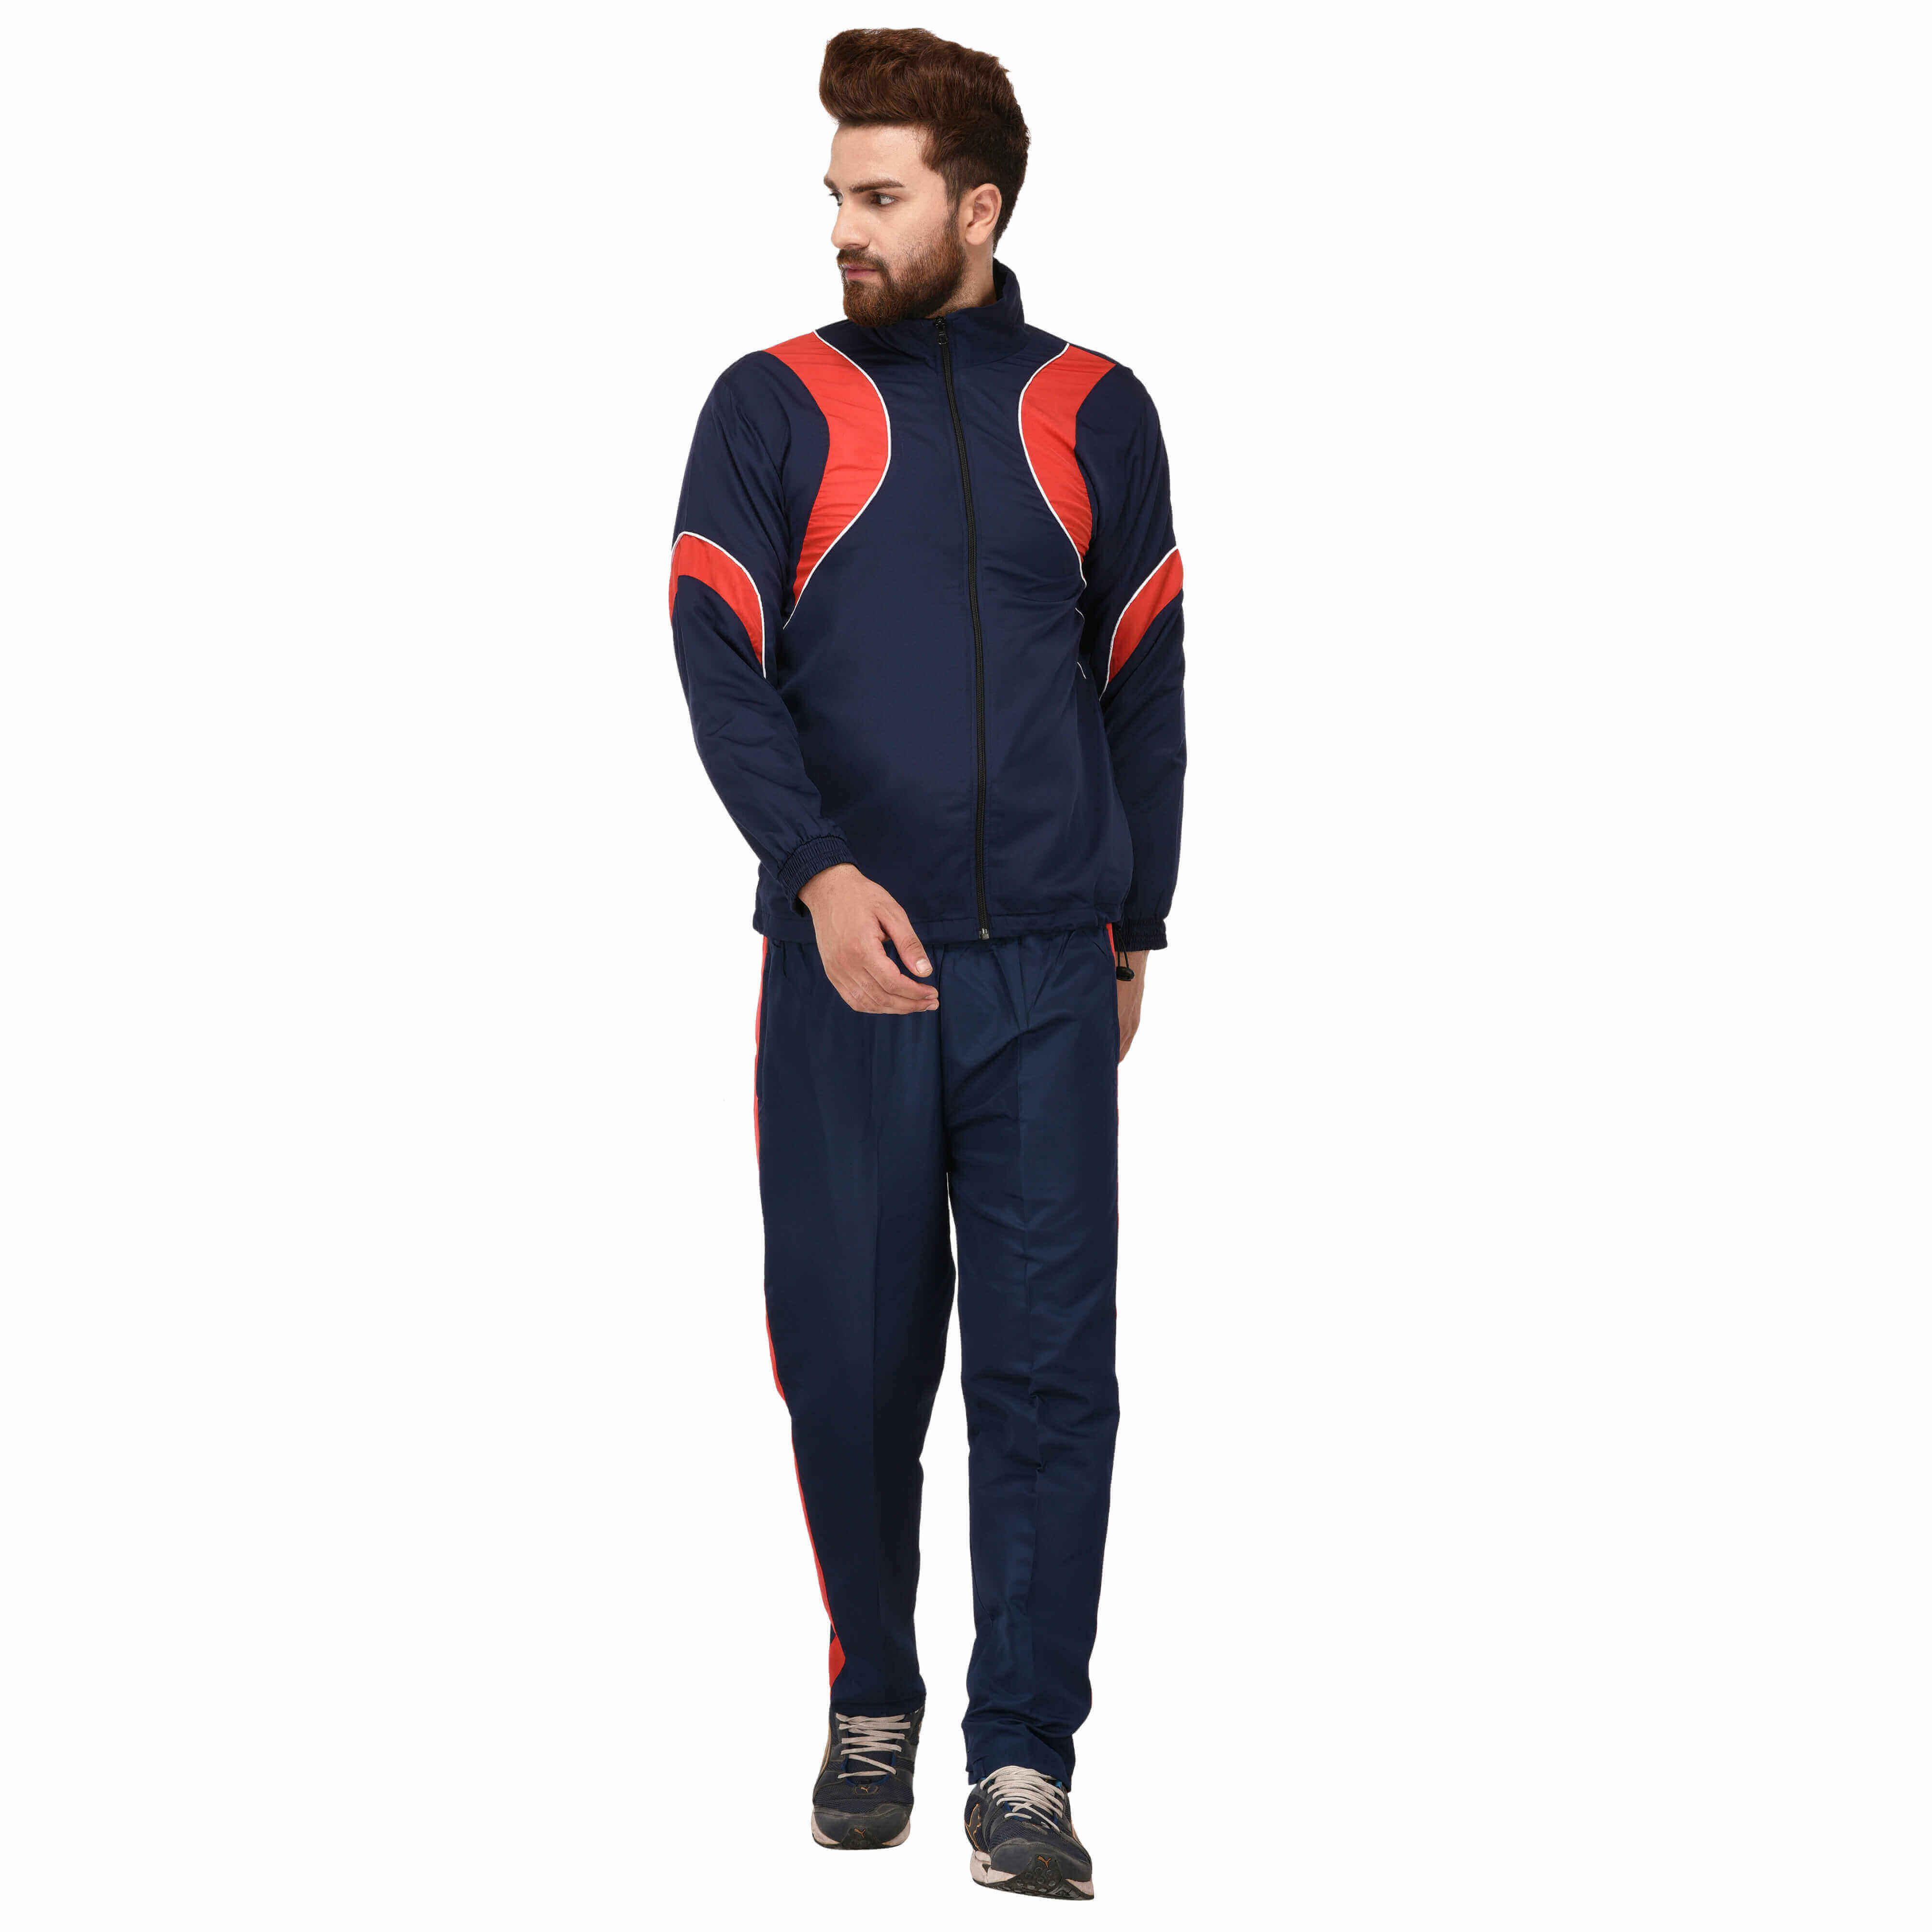 Red Tracksuit Manufacturers in Nanded